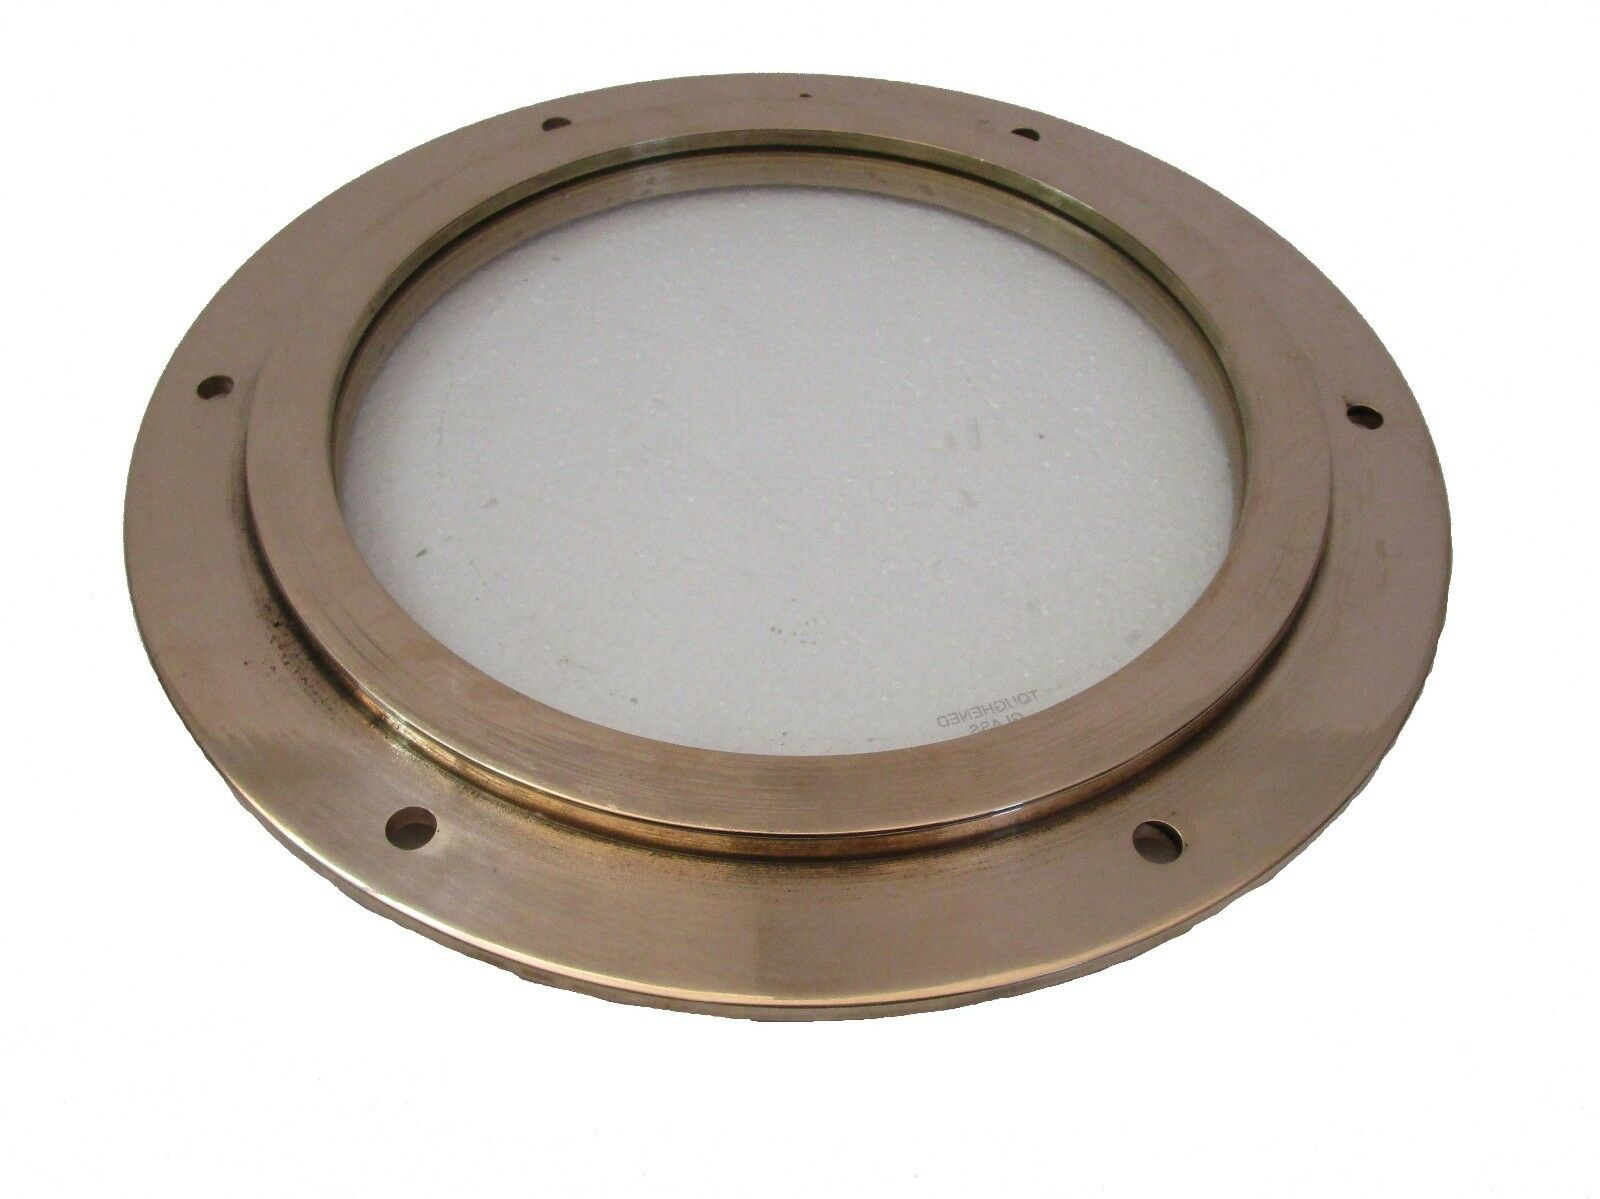 Marine BRASS PORT HOLE   Window   Porthole - 8 INCHES - TOUGHENED GLASS (5229)